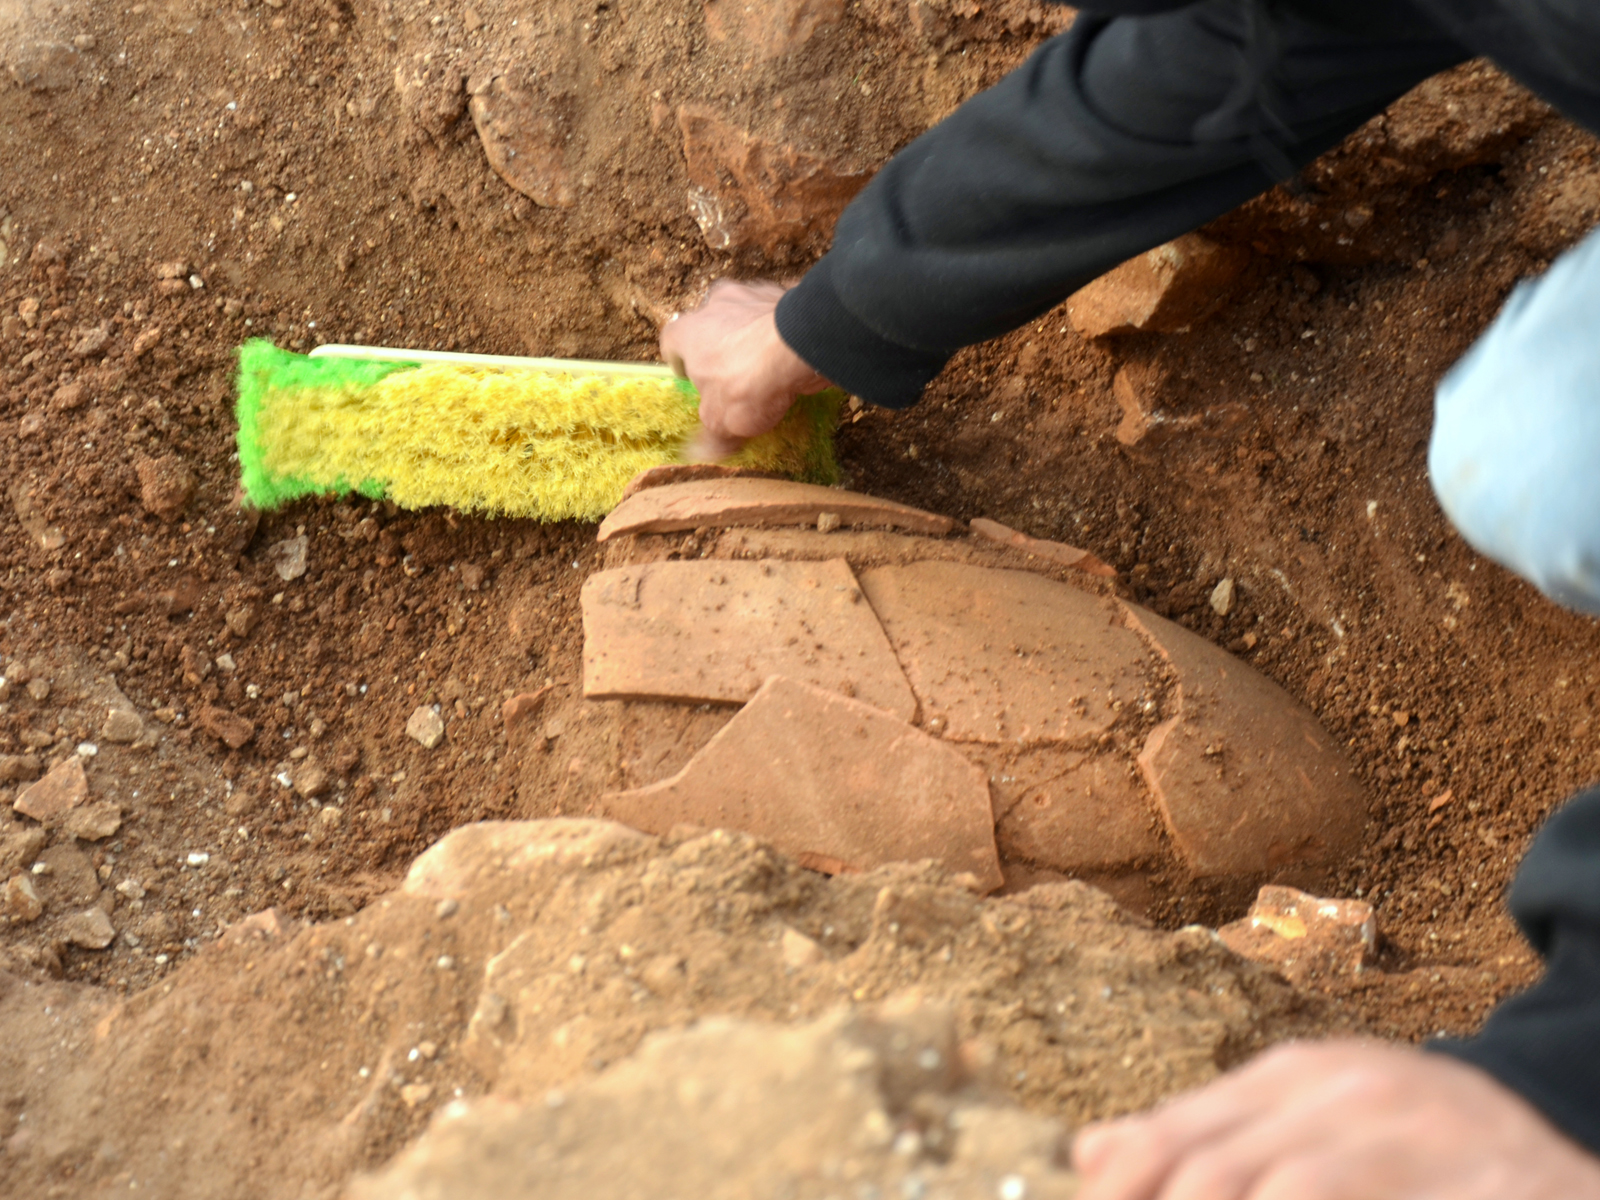 A 2,000-year-old jar. Photo by Yoli Shwartz/Israel Antiquities Authority